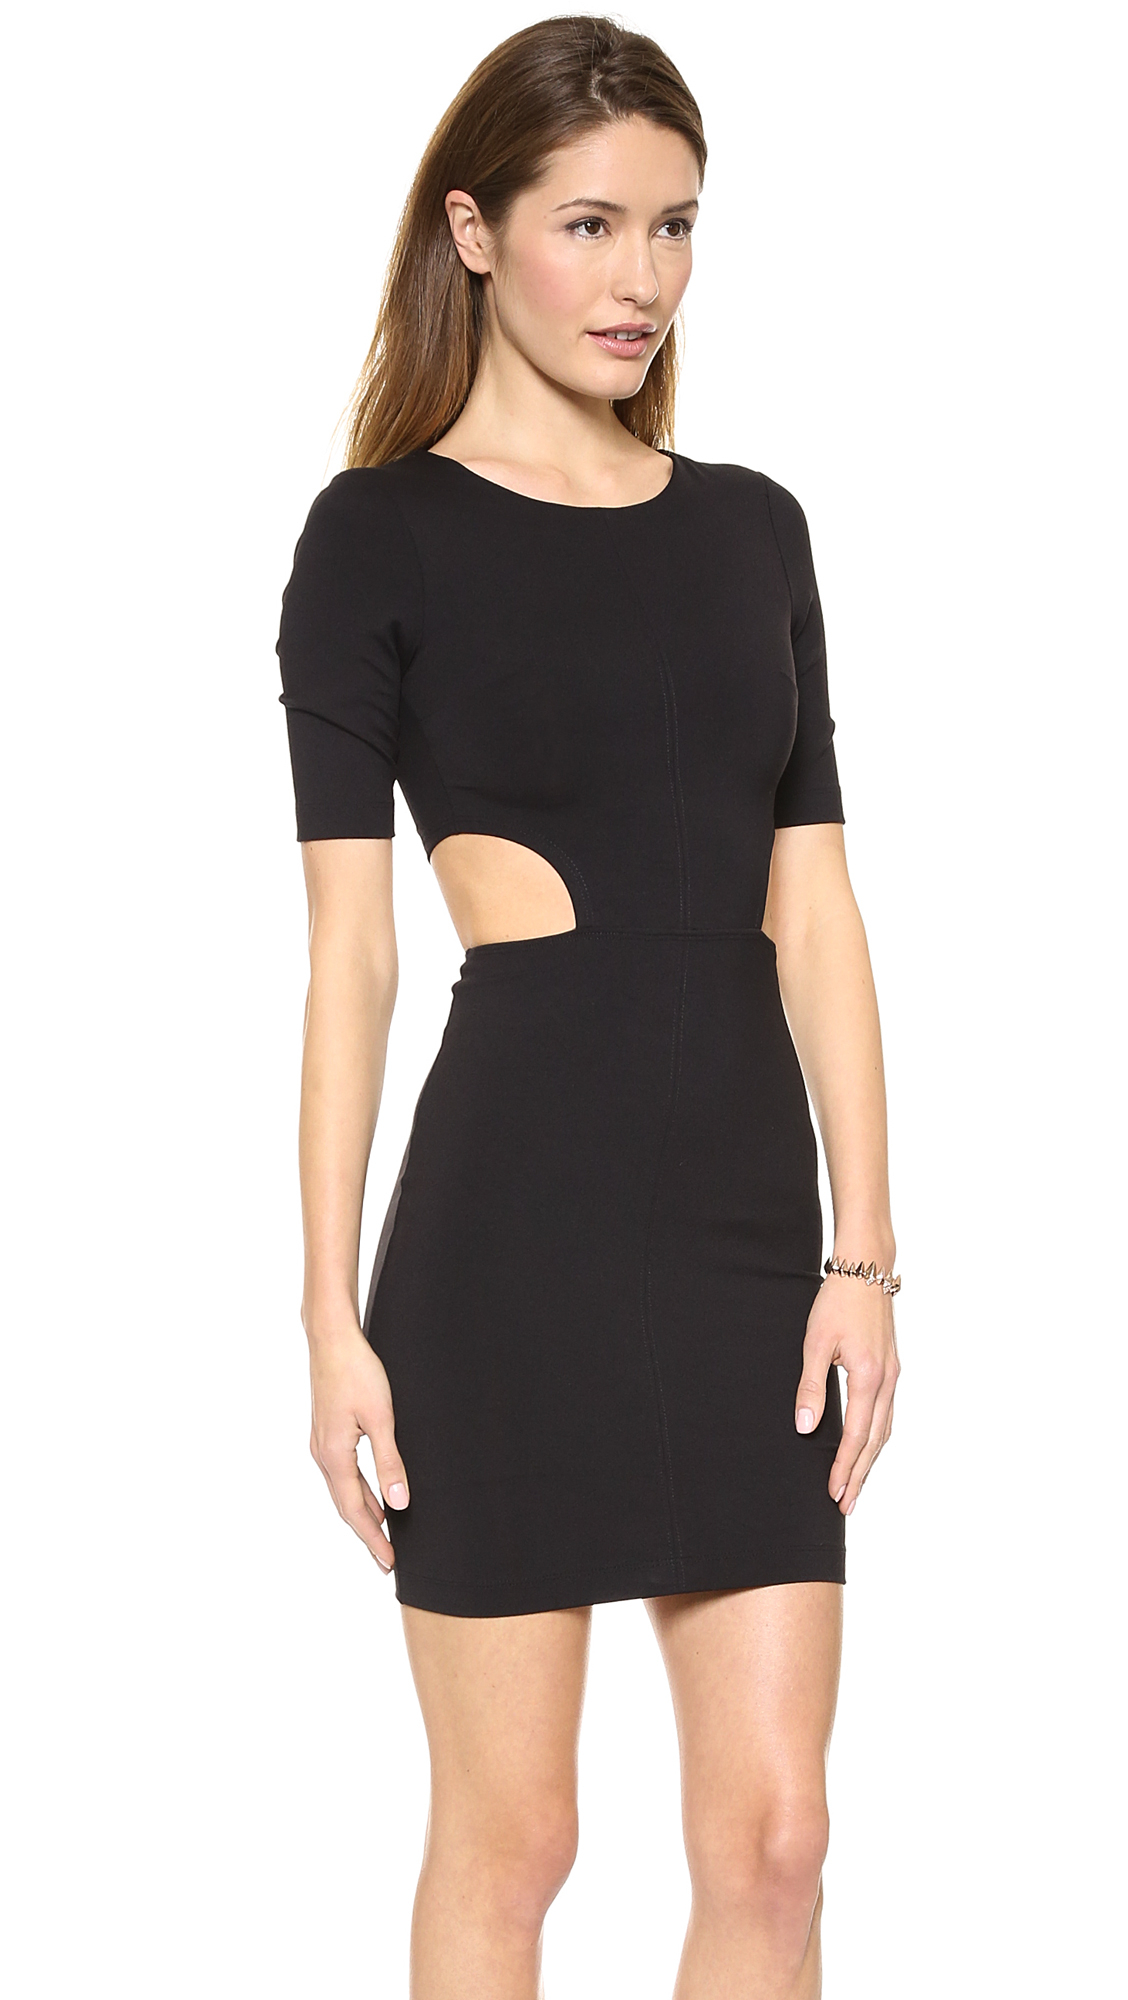 Lerner clothing store Clothing stores online